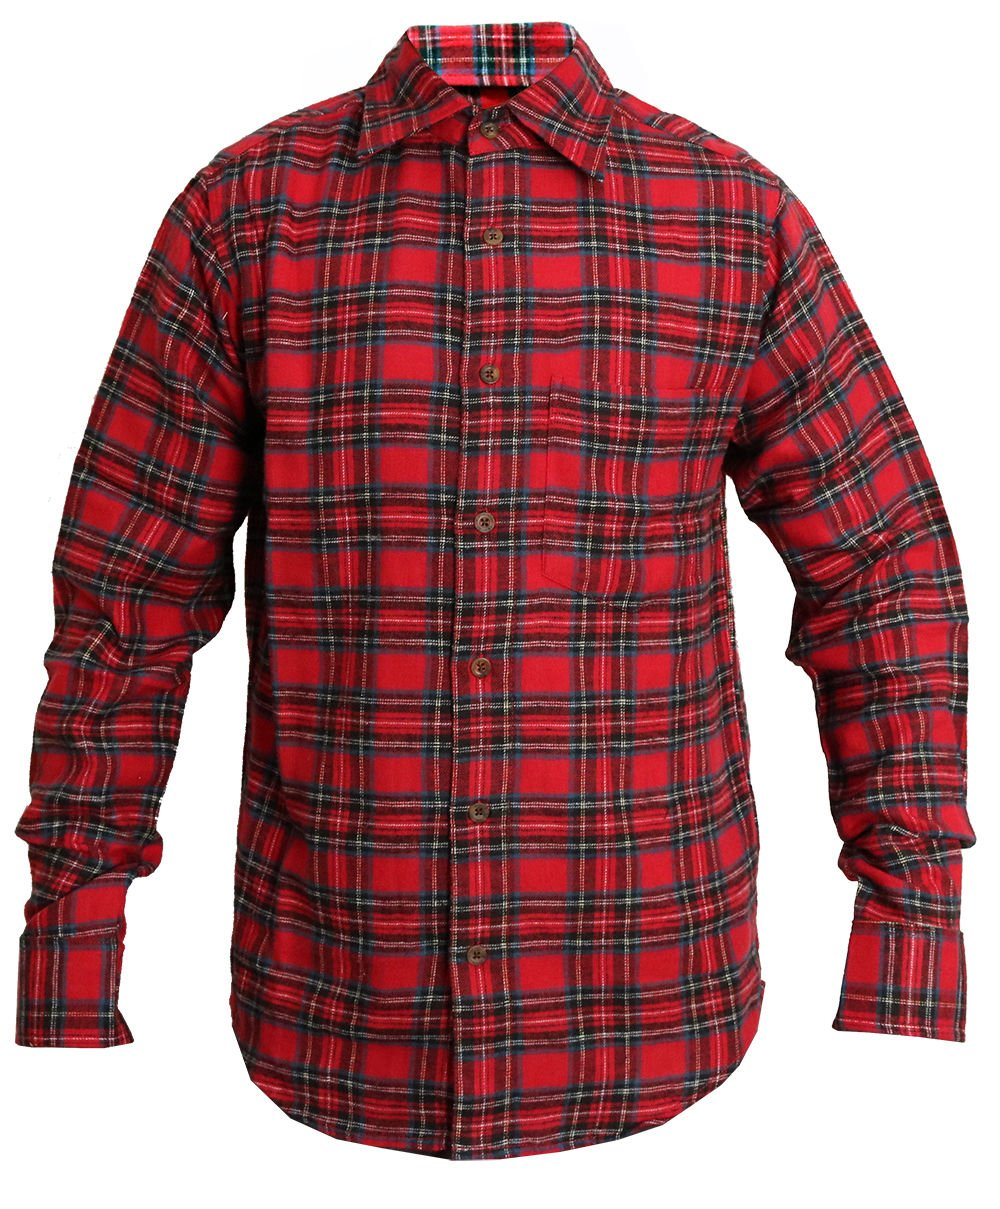 Classics Mens Check Shirt Brushed Cotton Boys Casual Shirts Plaid Flannel:  Amazon.co.uk: Clothing